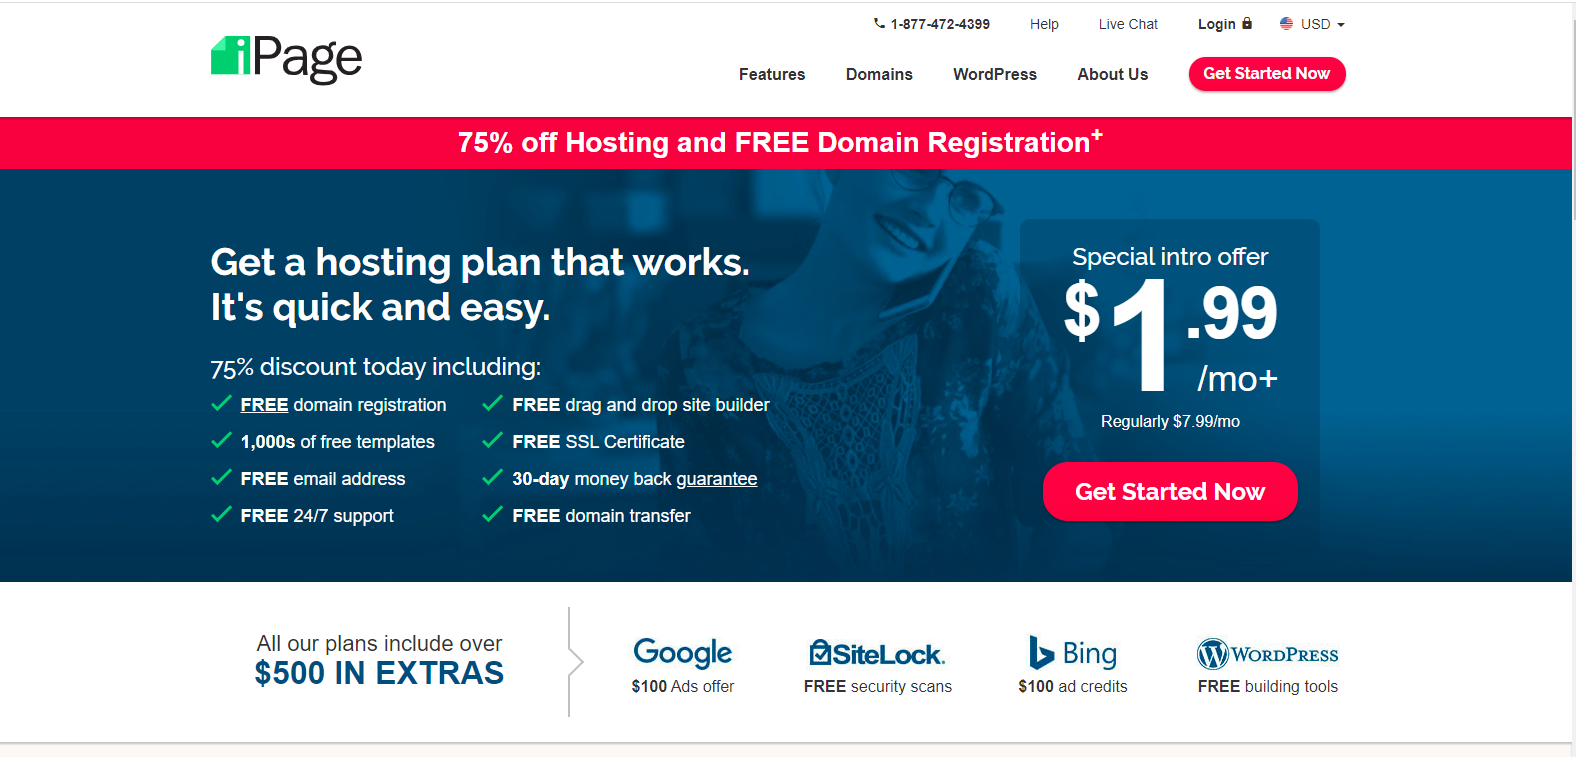 The Best 10 Web Hosting Providers For Your Small Business - Image 5